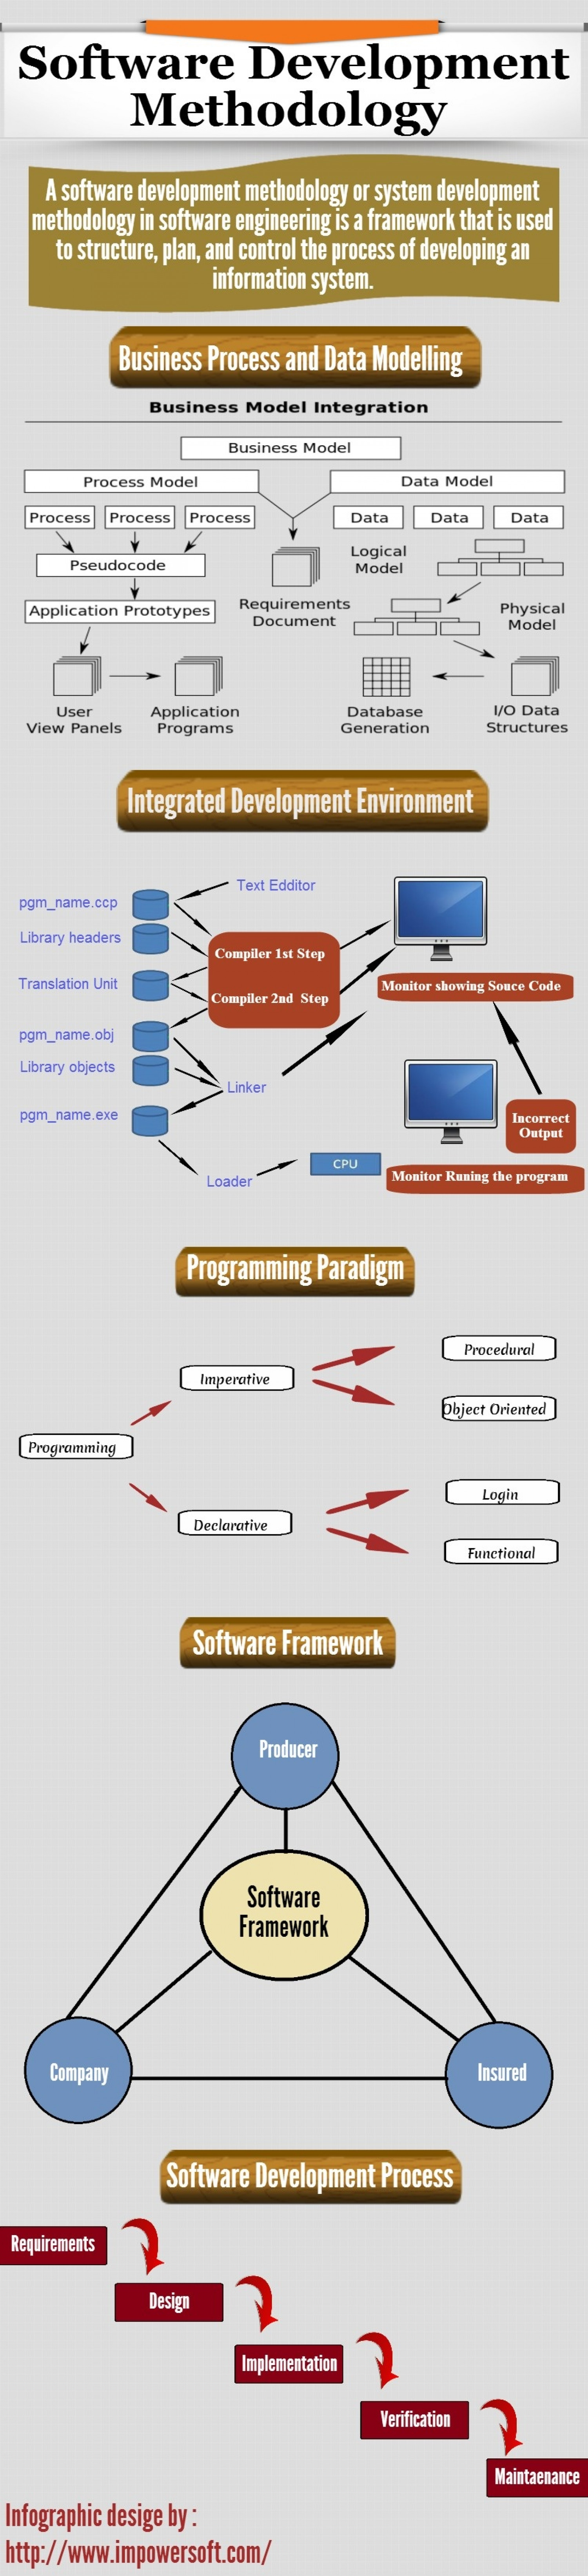 Software Development Methodology Infographic